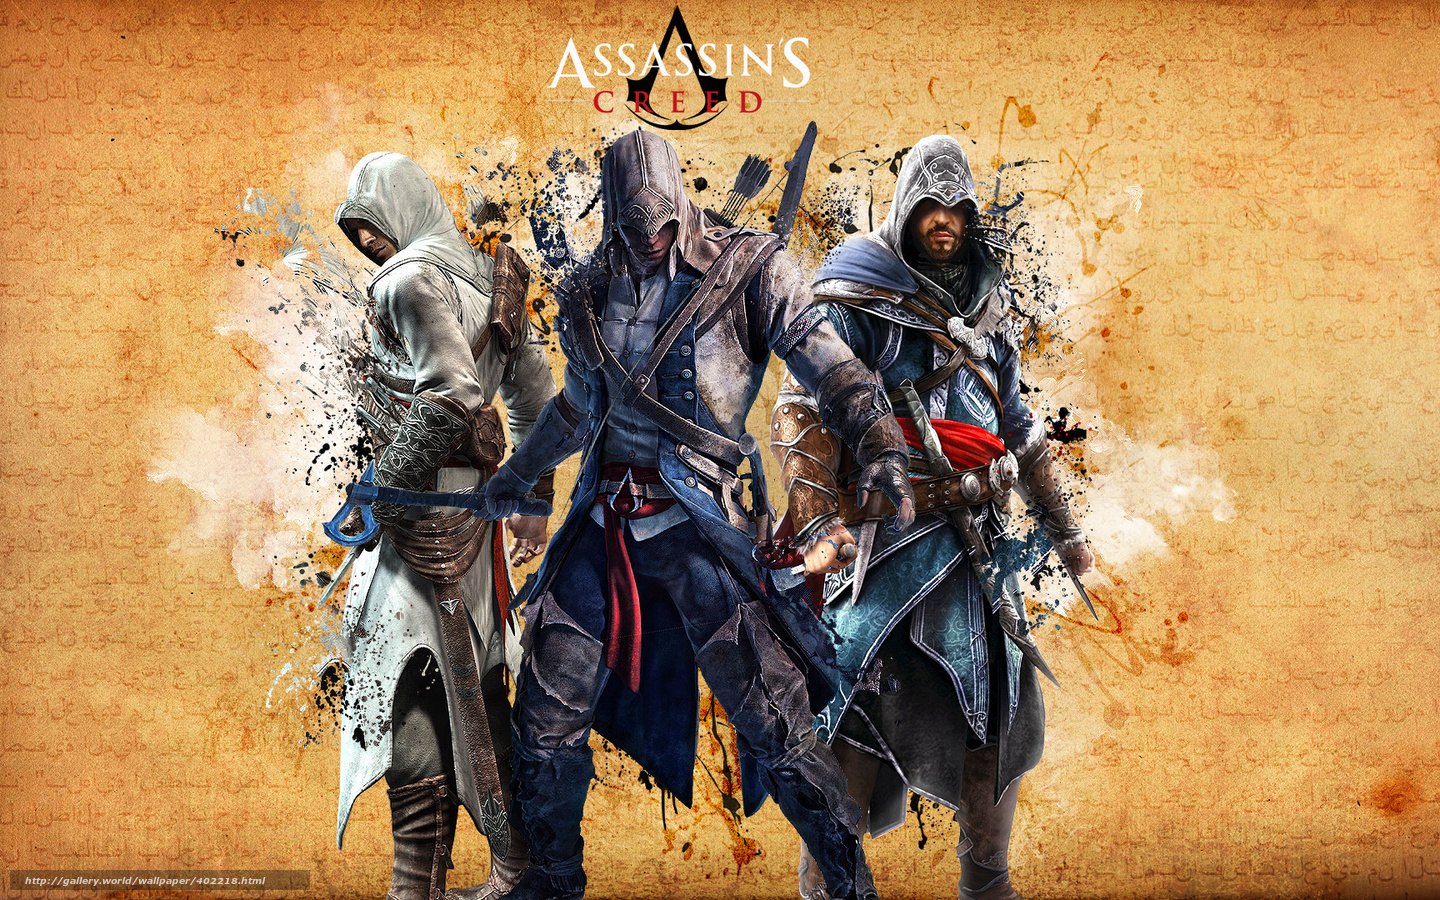 Screens Zimmer 4 angezeig: serial assassins creed 2